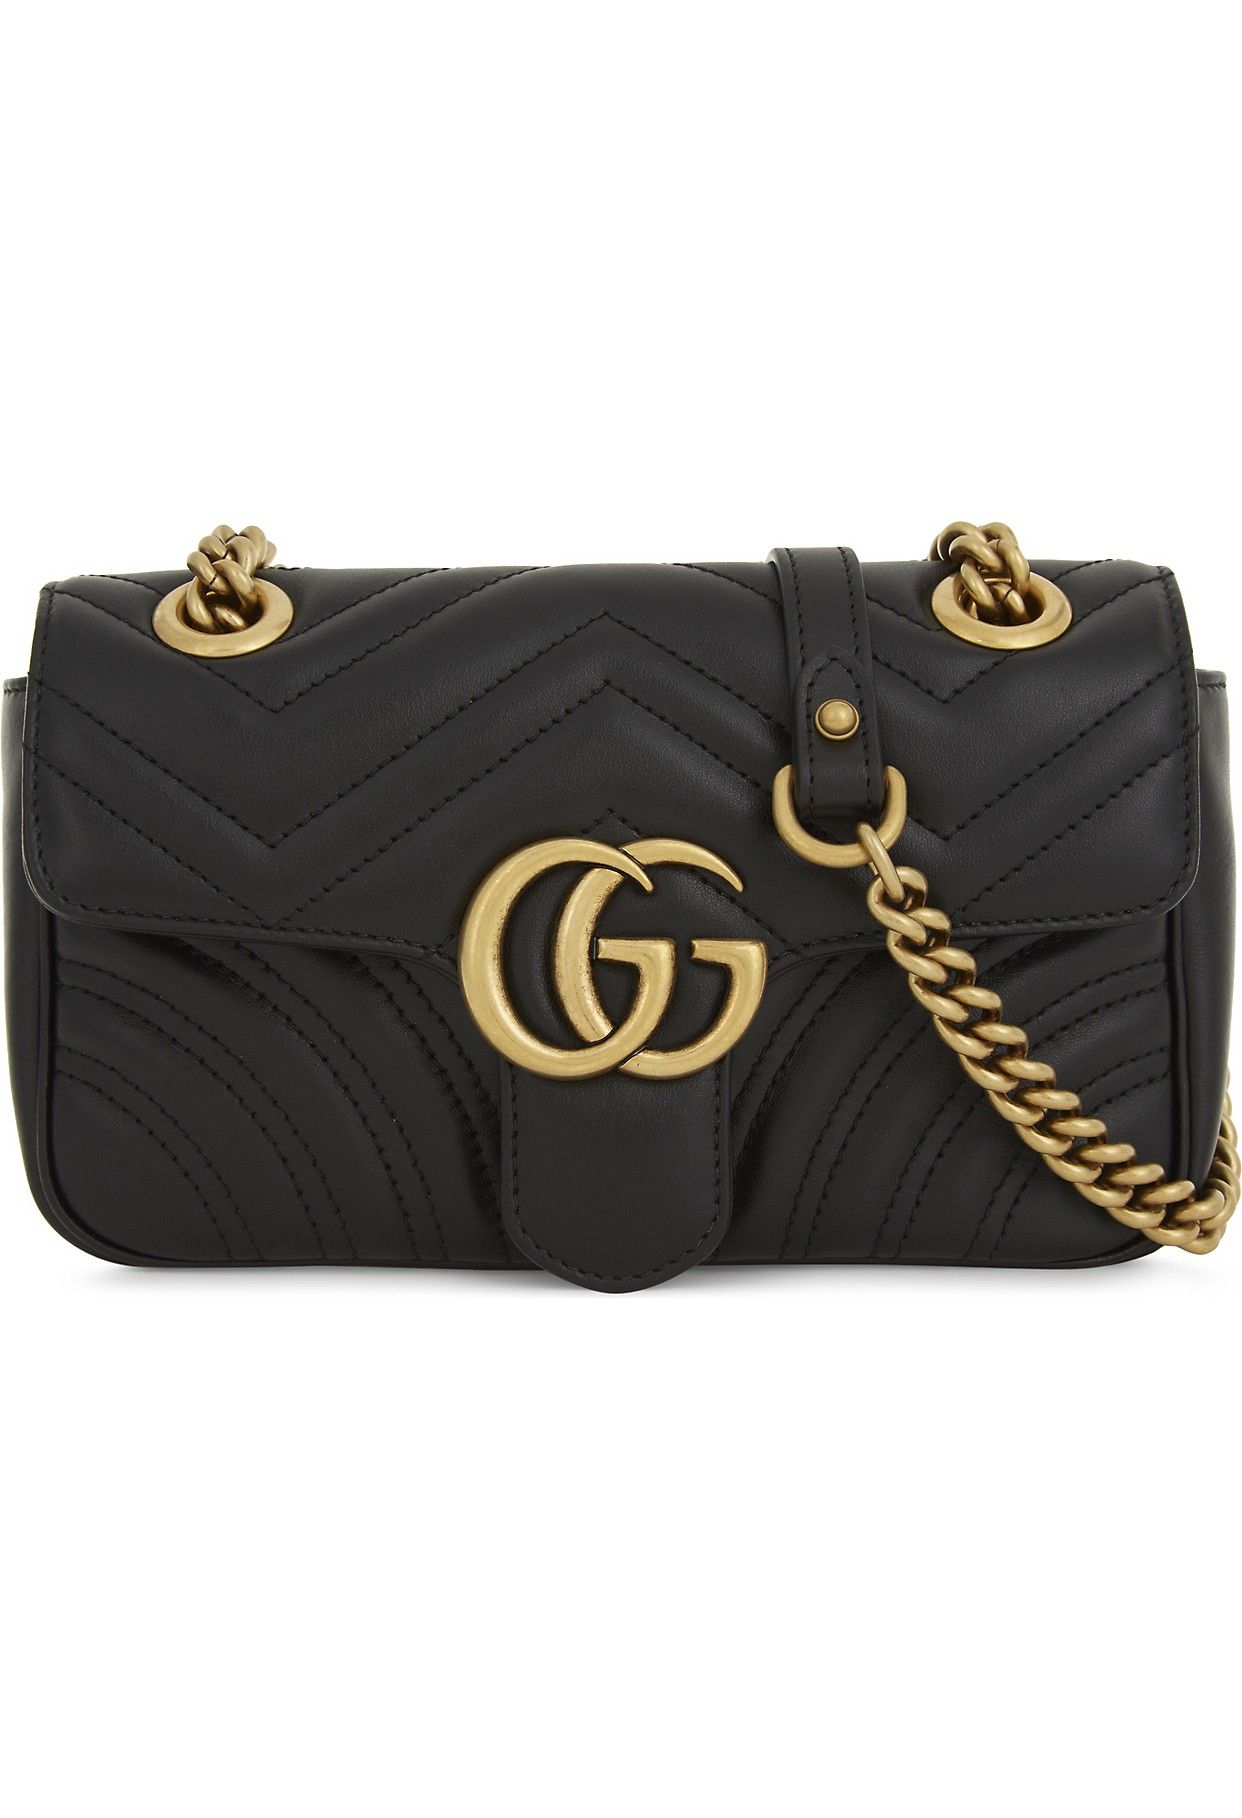 Lyst - Gucci Gg Marmont Mini Quilted Leather Cross Body